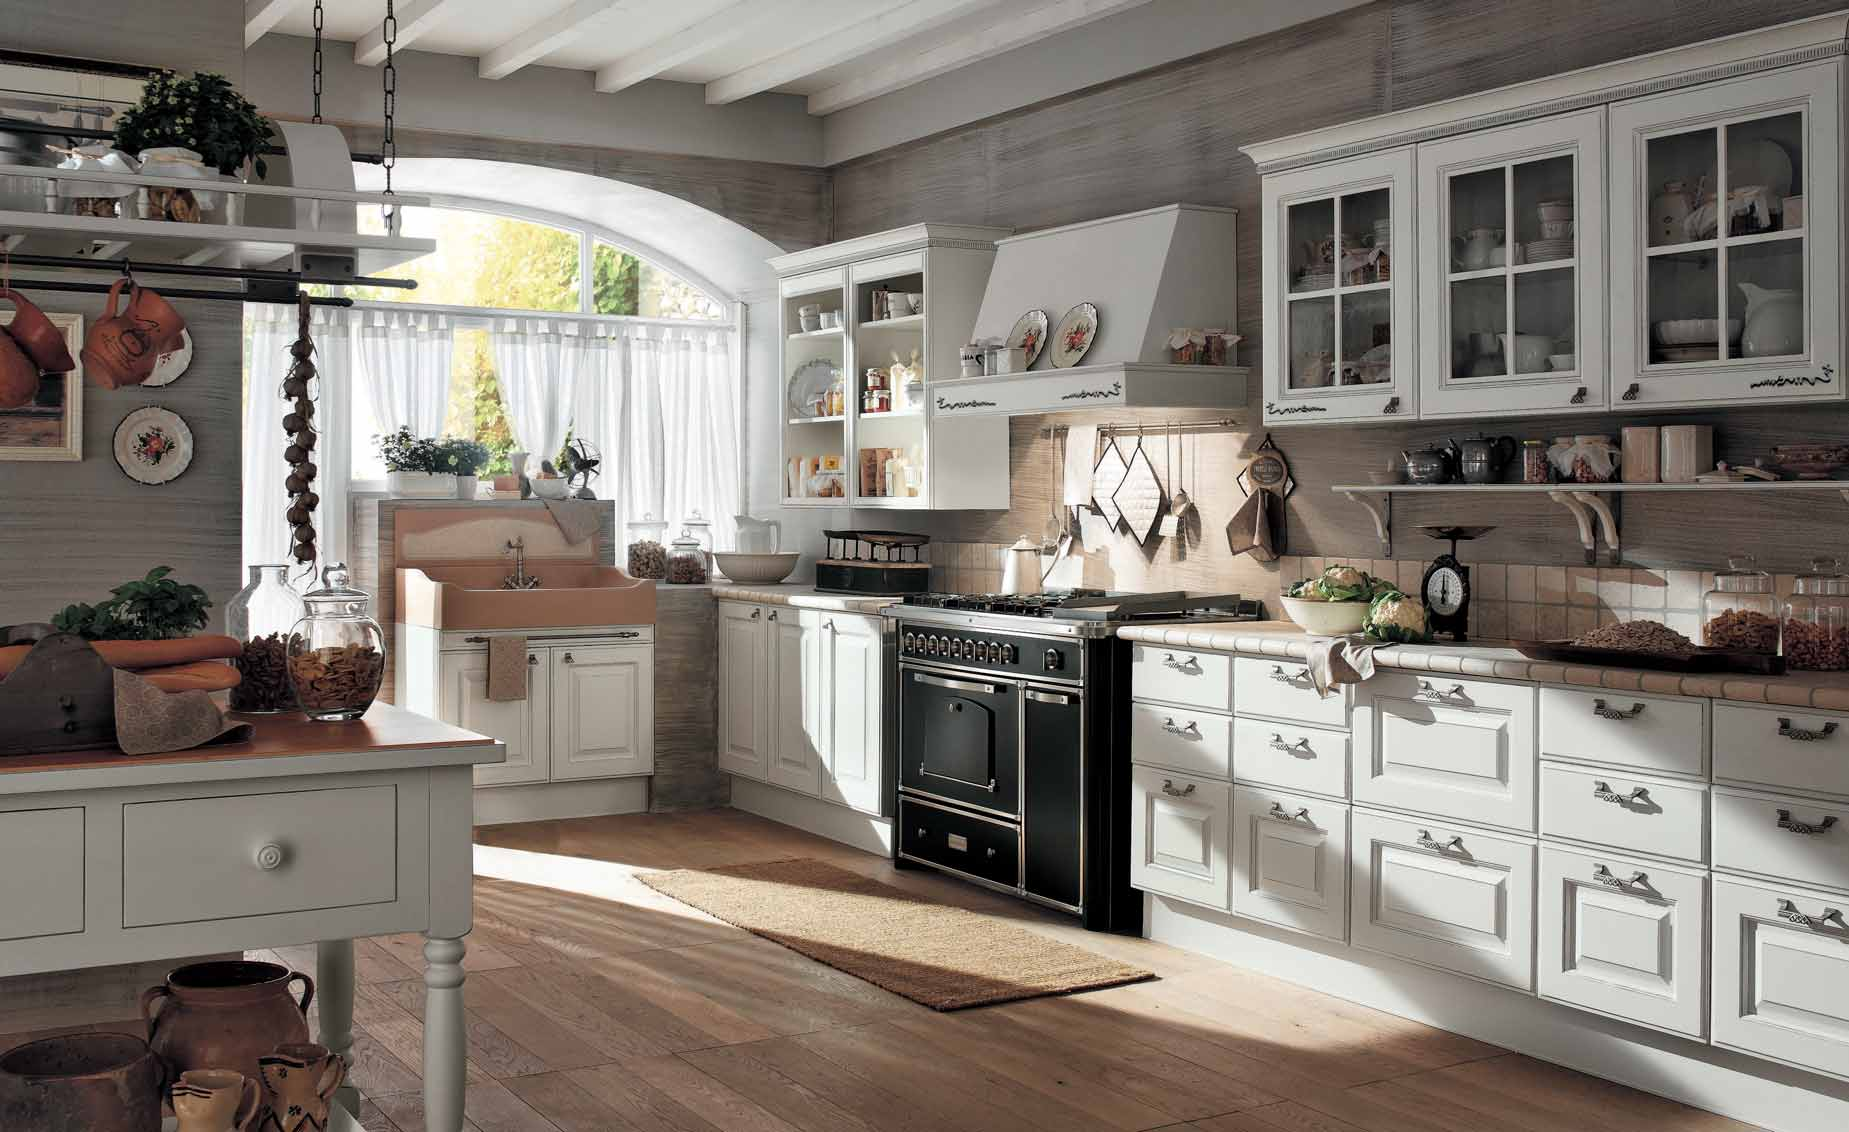 Enchanting Classical Kitchen (View 7 of 10)